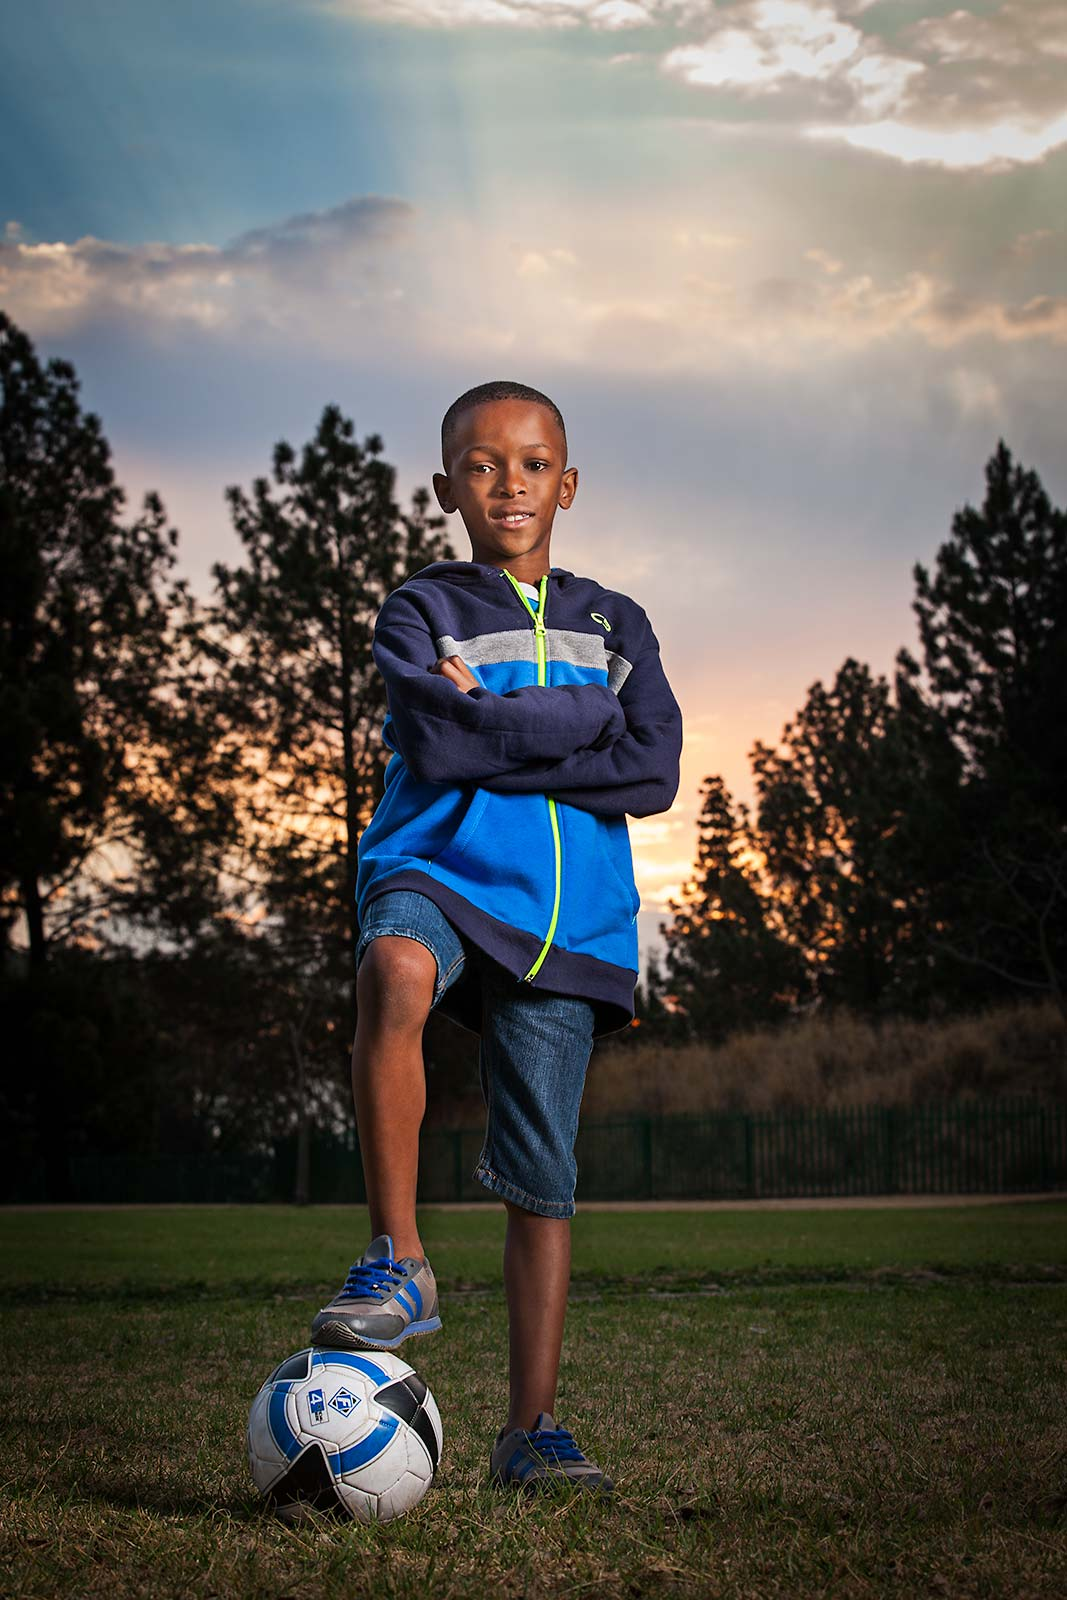 An inspirational young boy with a soccer ball in field at sunset